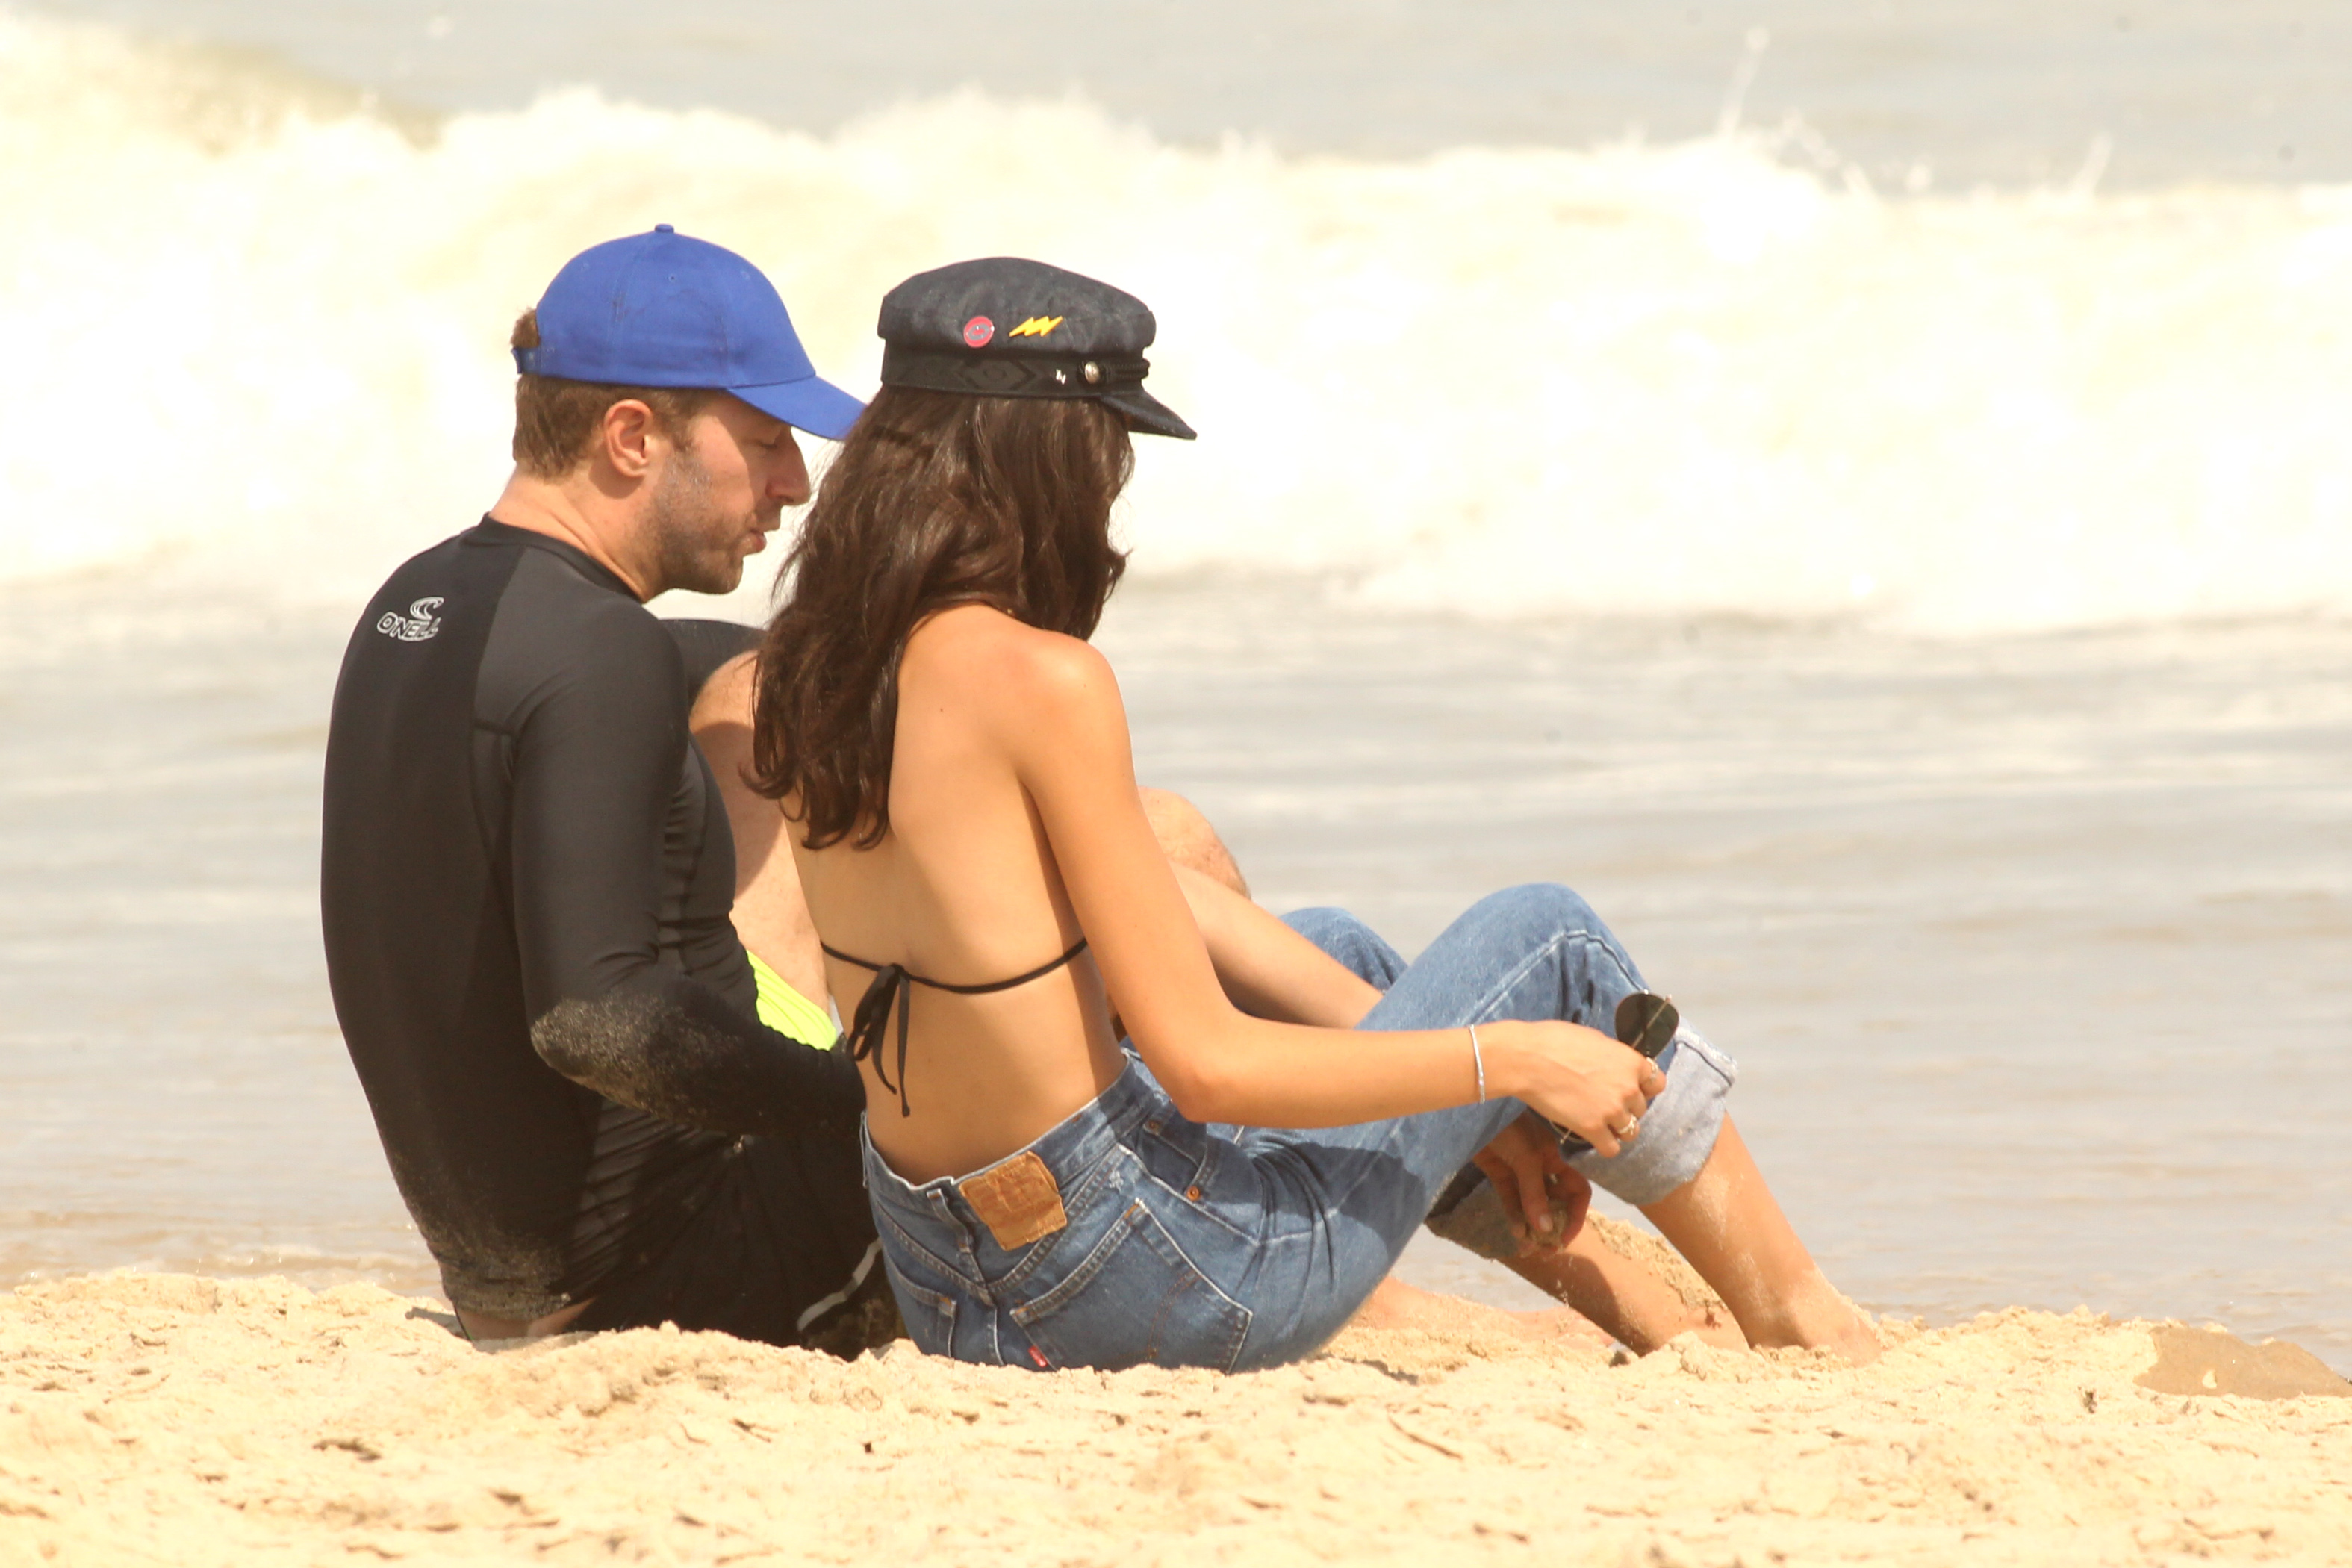 Exclusive, Hamptons, NY - 7/21/2017 - Chris Martin and a mystery woman seen on the sands of the beach in the Hamptons  -PICTURED: Chris Martin -, Image: 342653594, License: Rights-managed, Restrictions: Exclusive, Model Release: no, Credit line: Profimedia, INSTAR Images